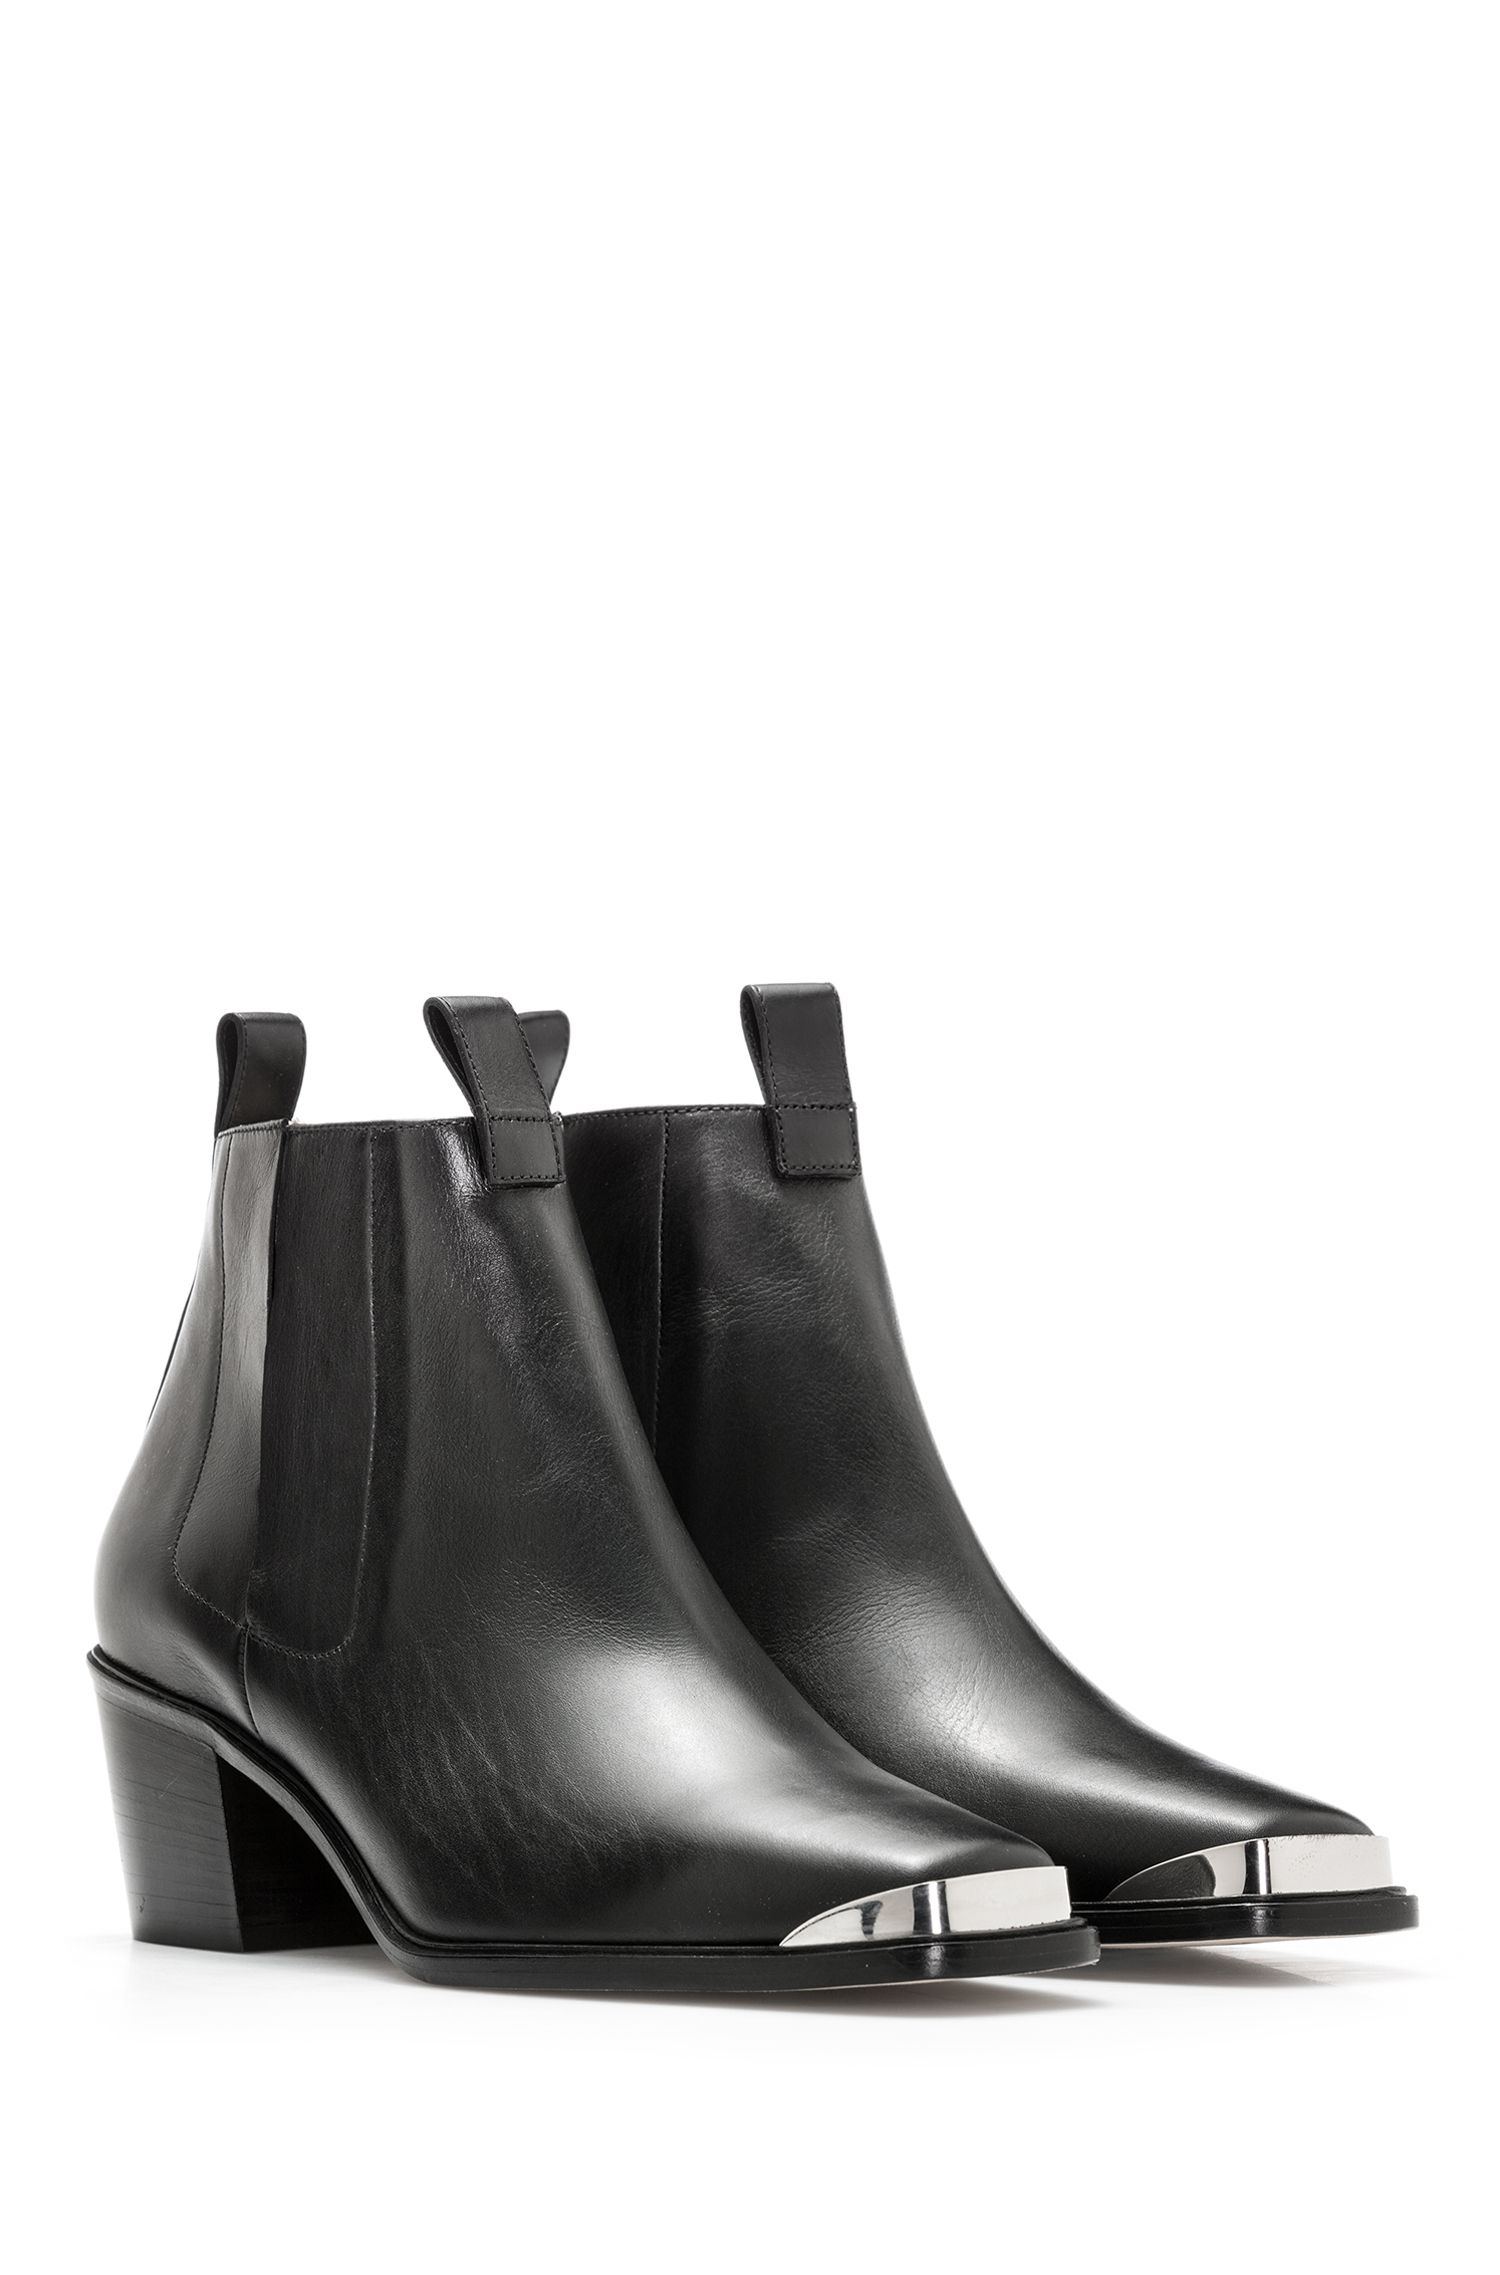 Italian calf-leather Chelsea boots with polished silver trim